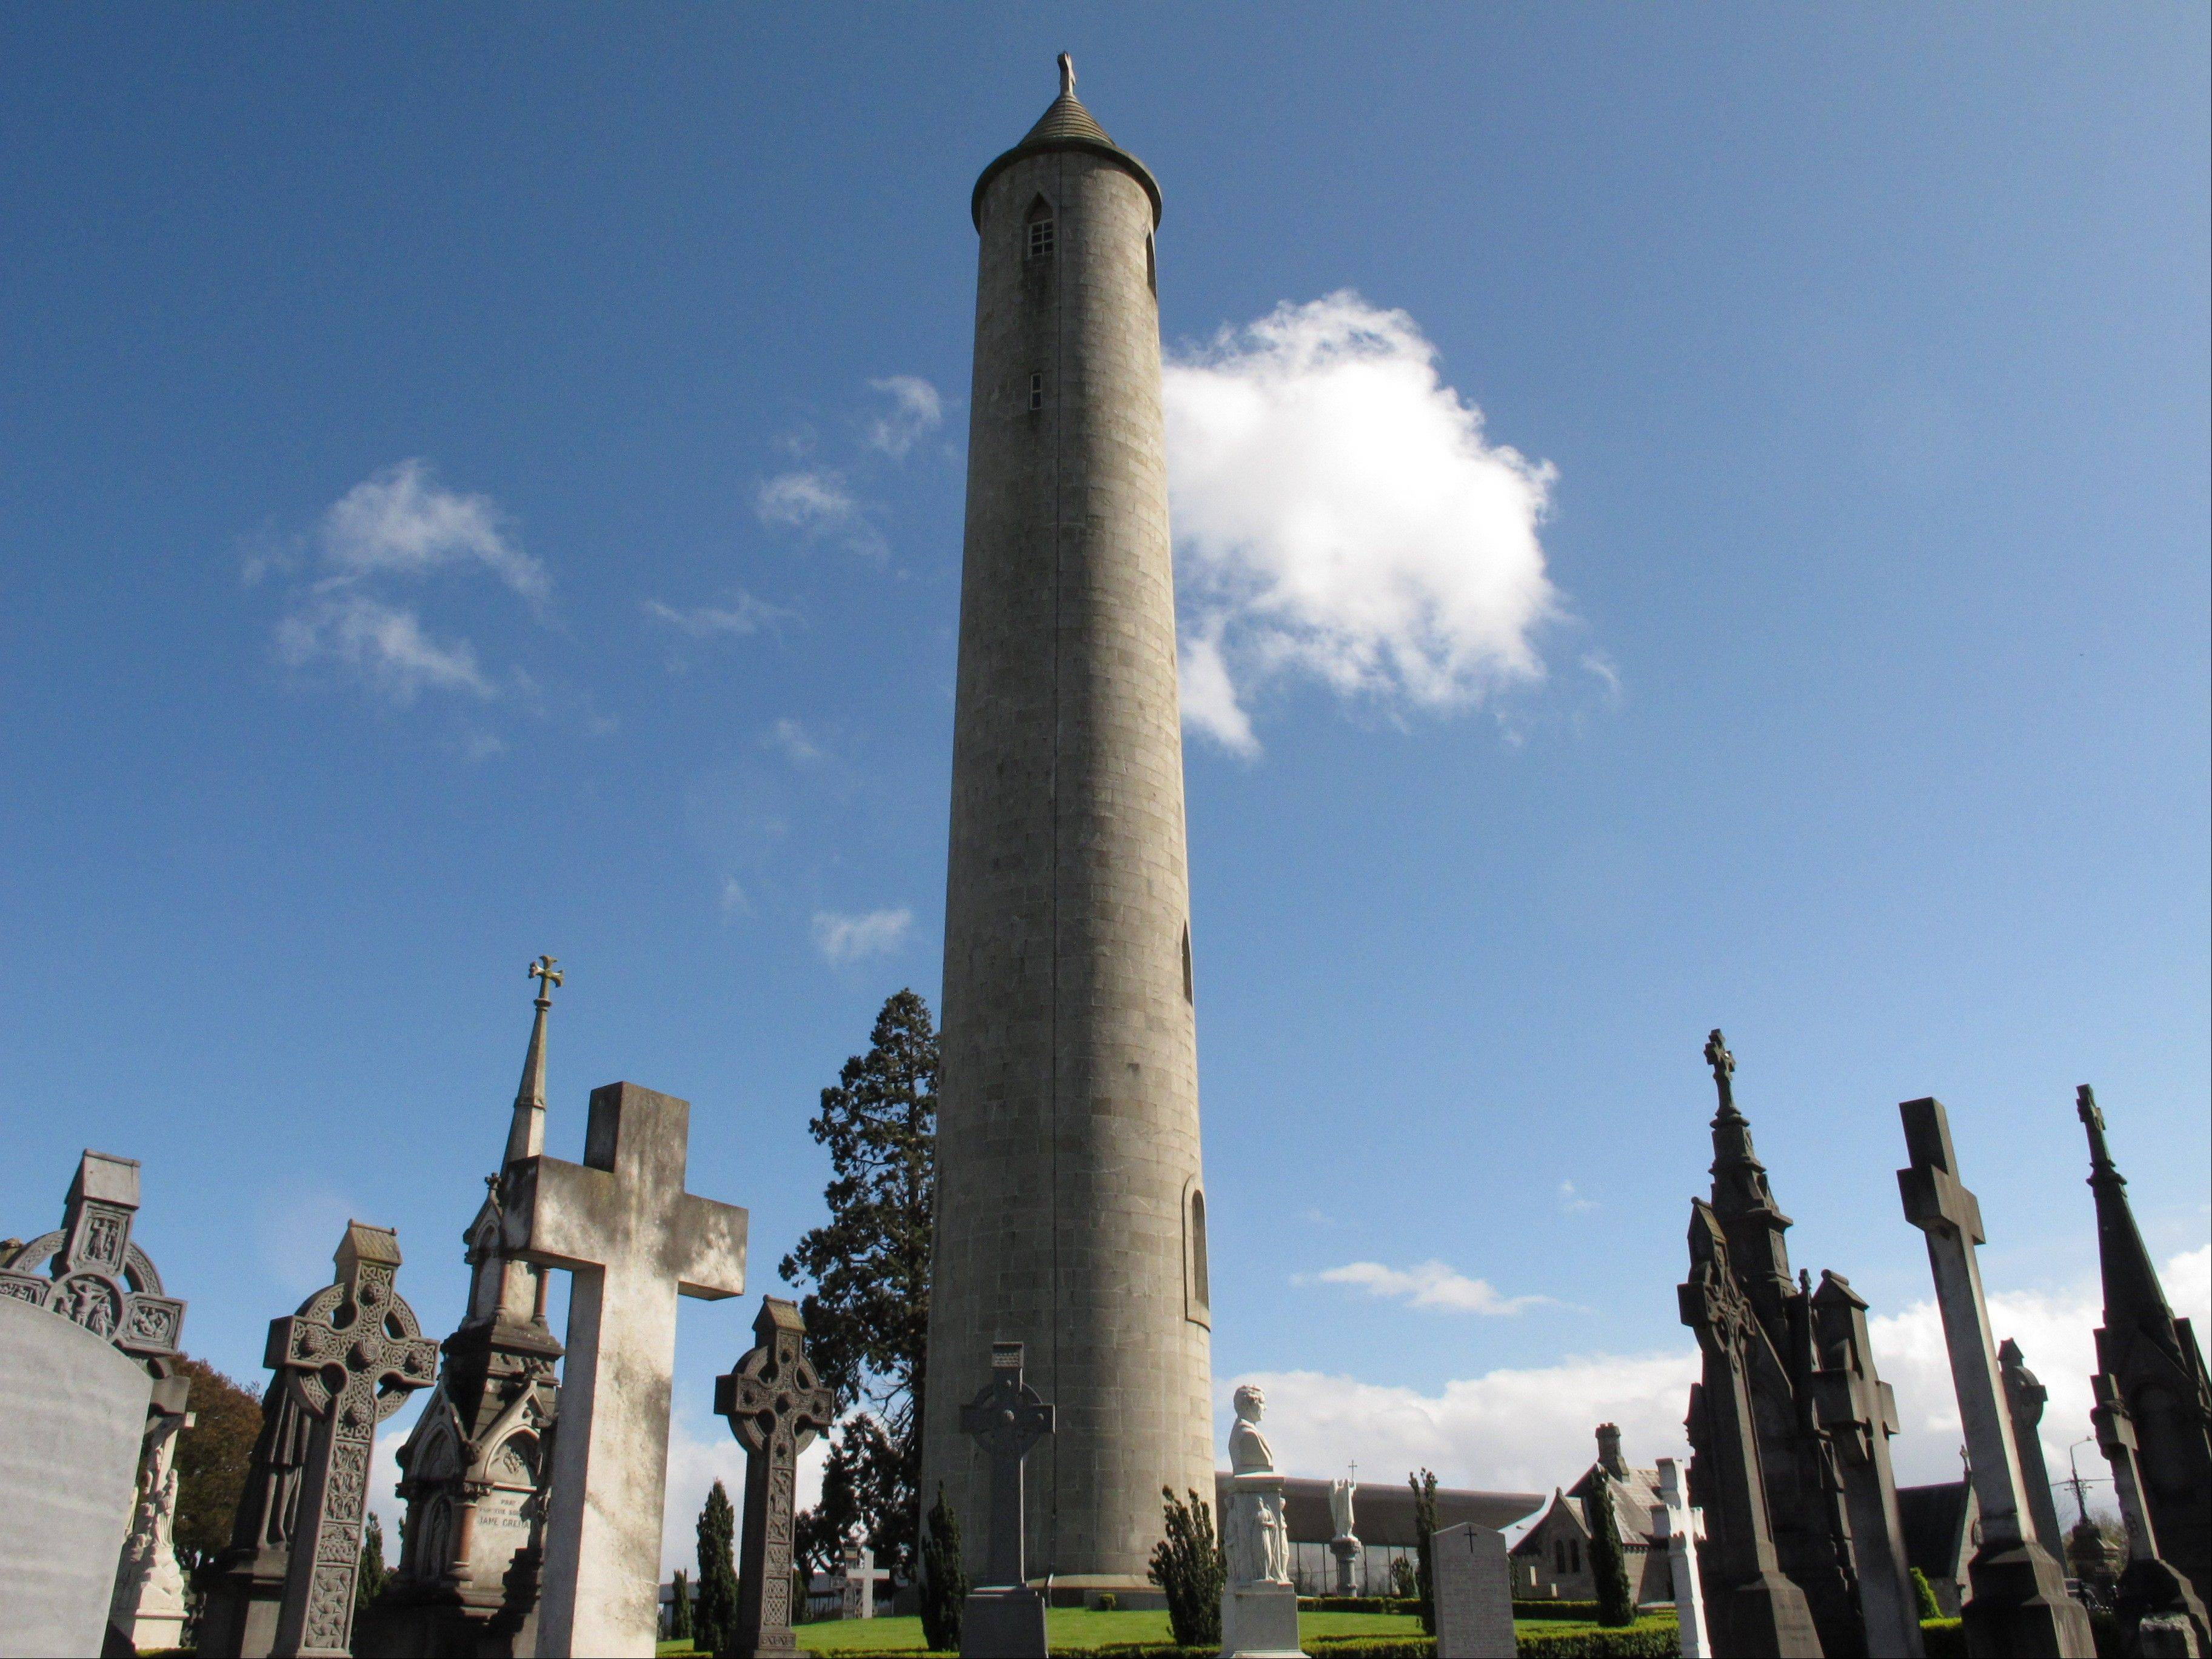 This May 13, 2013 photo shows the giant round tower above the grave of 19th Century Irish politician, Daniel O'Connell, who founded Glasnevin Cemetery in Dublin in 1832. The cemetery, steeped in Irish history, is hosting events related to The Gathering, a yearlong initiative to bring Irish emigrants and their descendants back to Ireland to celebrate their heritage. The cemetery's family events for clans (O'Neills, O'Donnells, O'Briens, etc.) include a walking tour, a museum visit and help in tracing kin. (AP Photo/Helen O'Neill)